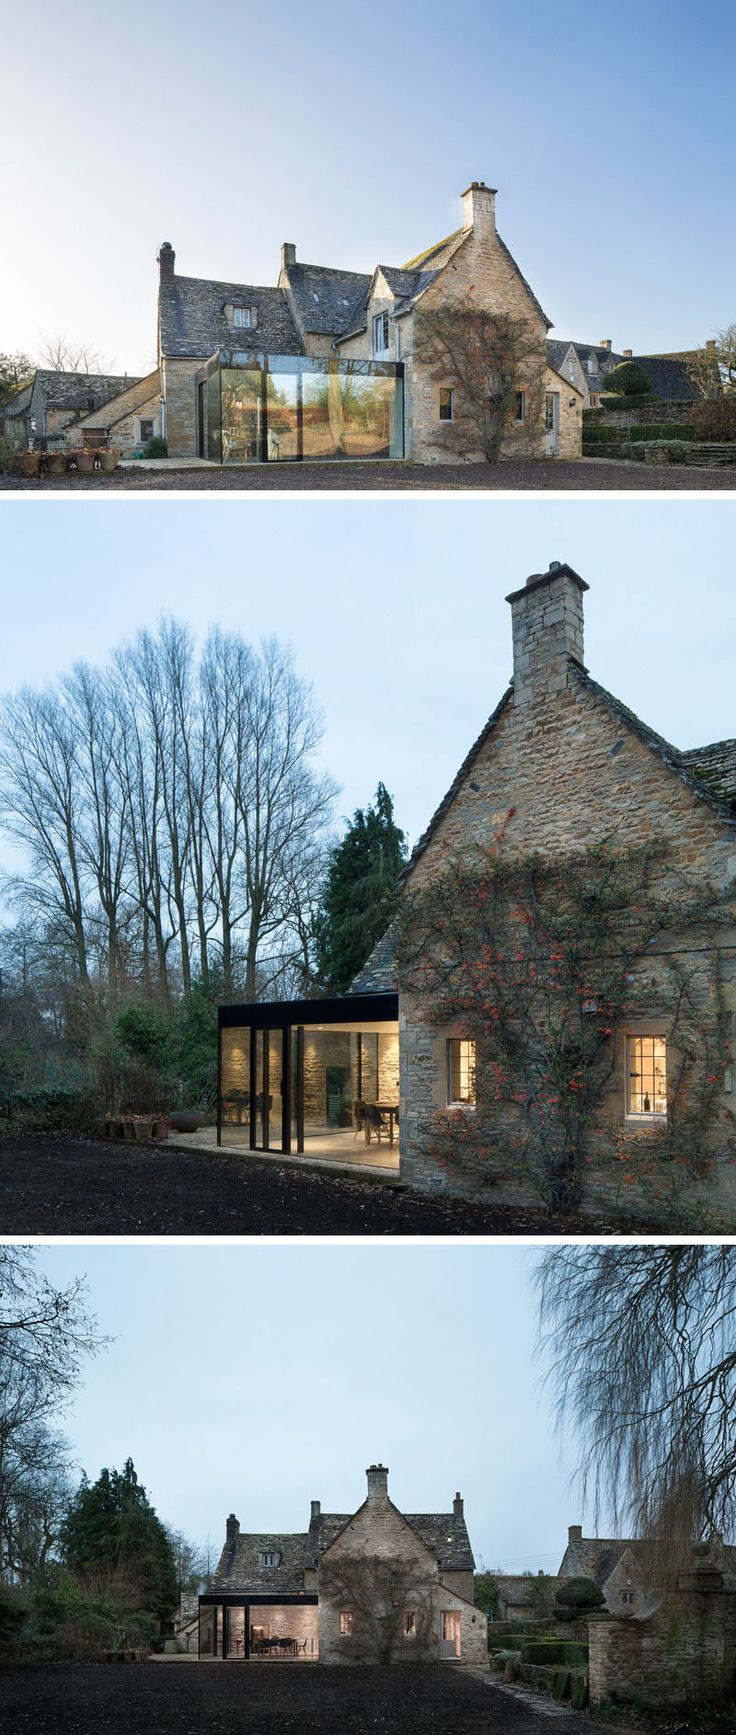 14 Examples Of British Houses With Contemporary Extensions | A traditional stone house got a contemporary extension built from glass windows and black steel that created a modern dining area still connected to the rest of the stone home.